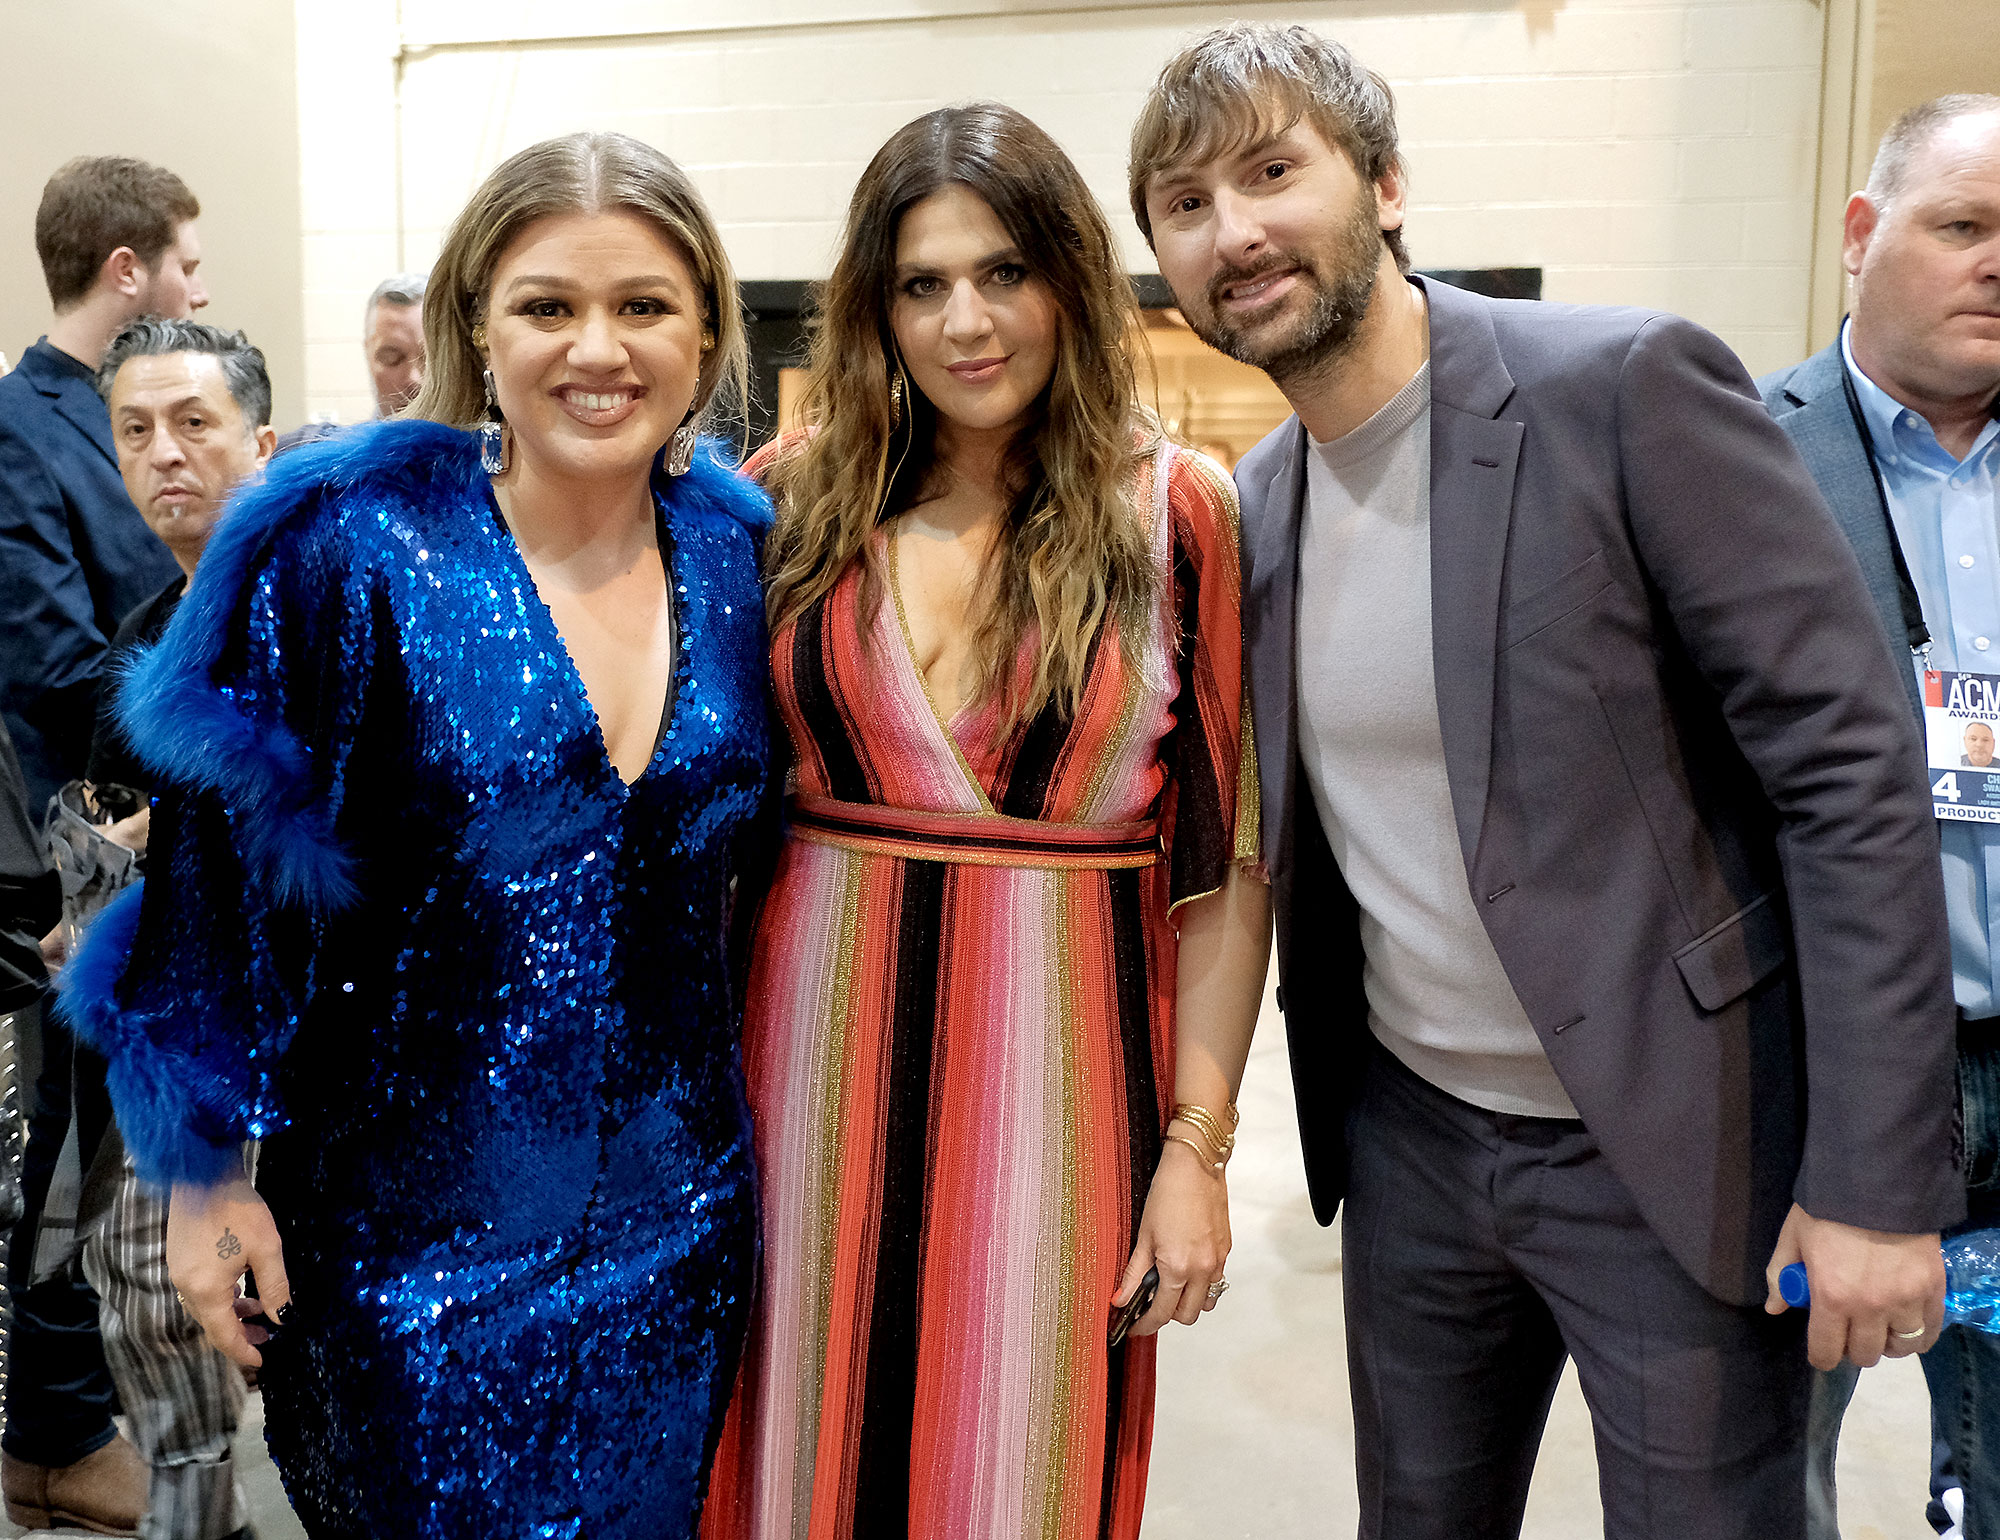 Inside ACM Awards 2019 Kelly Clarkson Hillary Scott Dave Haywood - Kelly Clarkson leaned in close for a photo with Scott and Haywood.